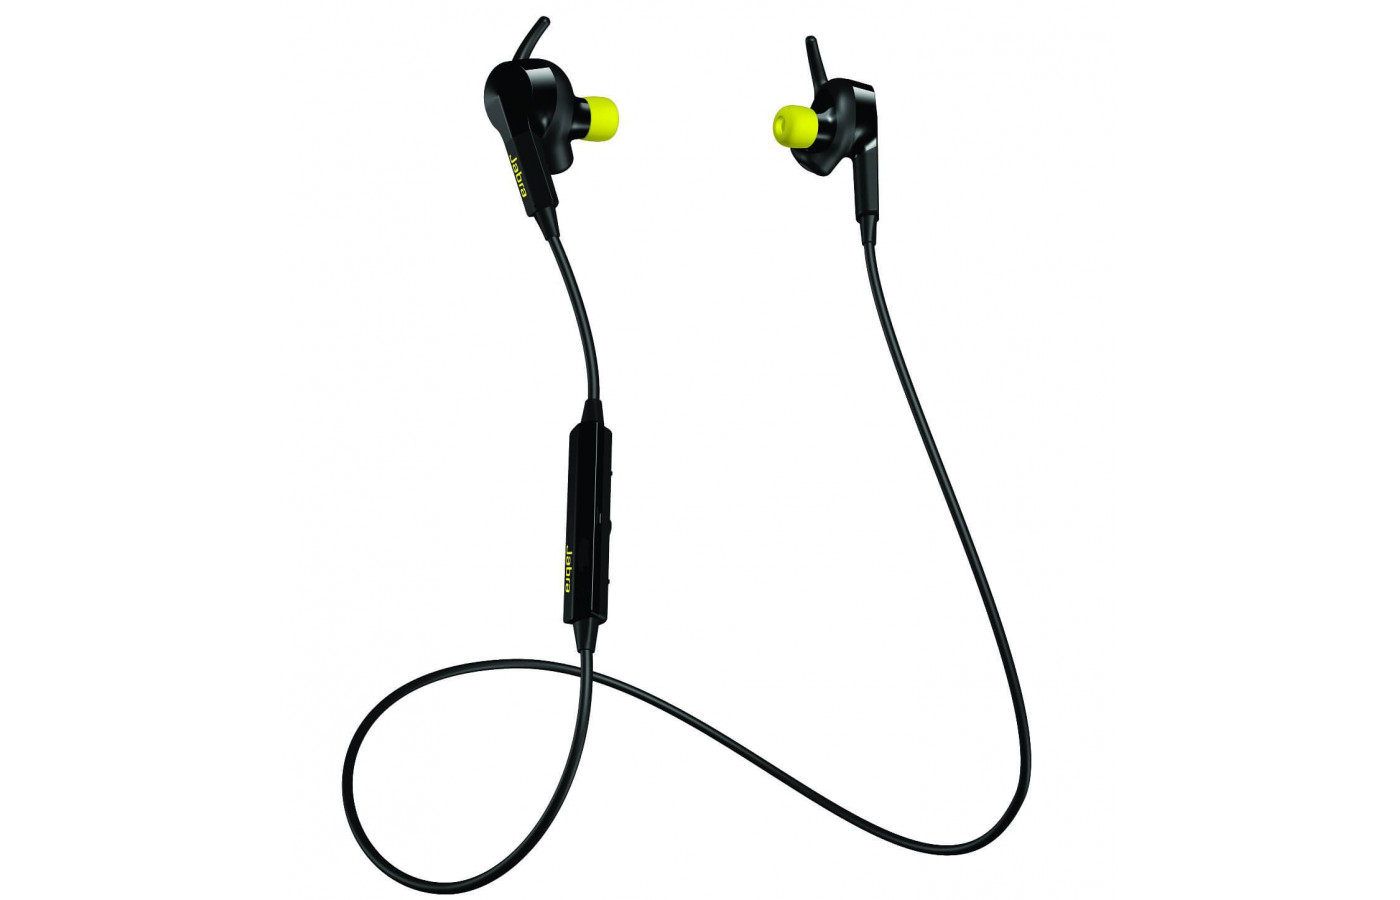 The Sport Pulse cmes with silicone and COMPLY foam ear tips.